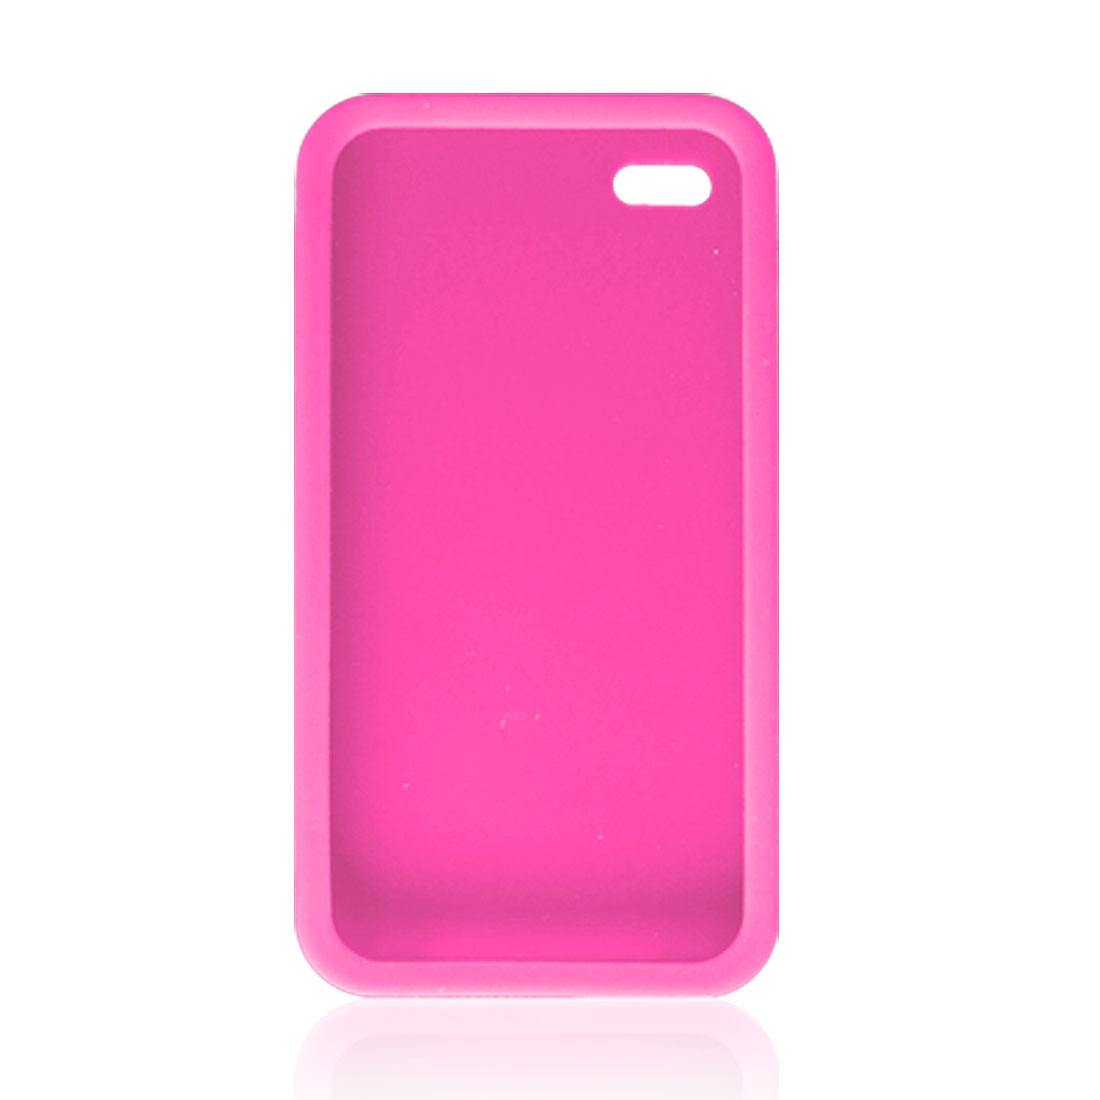 Amaranth Pink Silicone Skin Case for Apple iPhone 4 4G